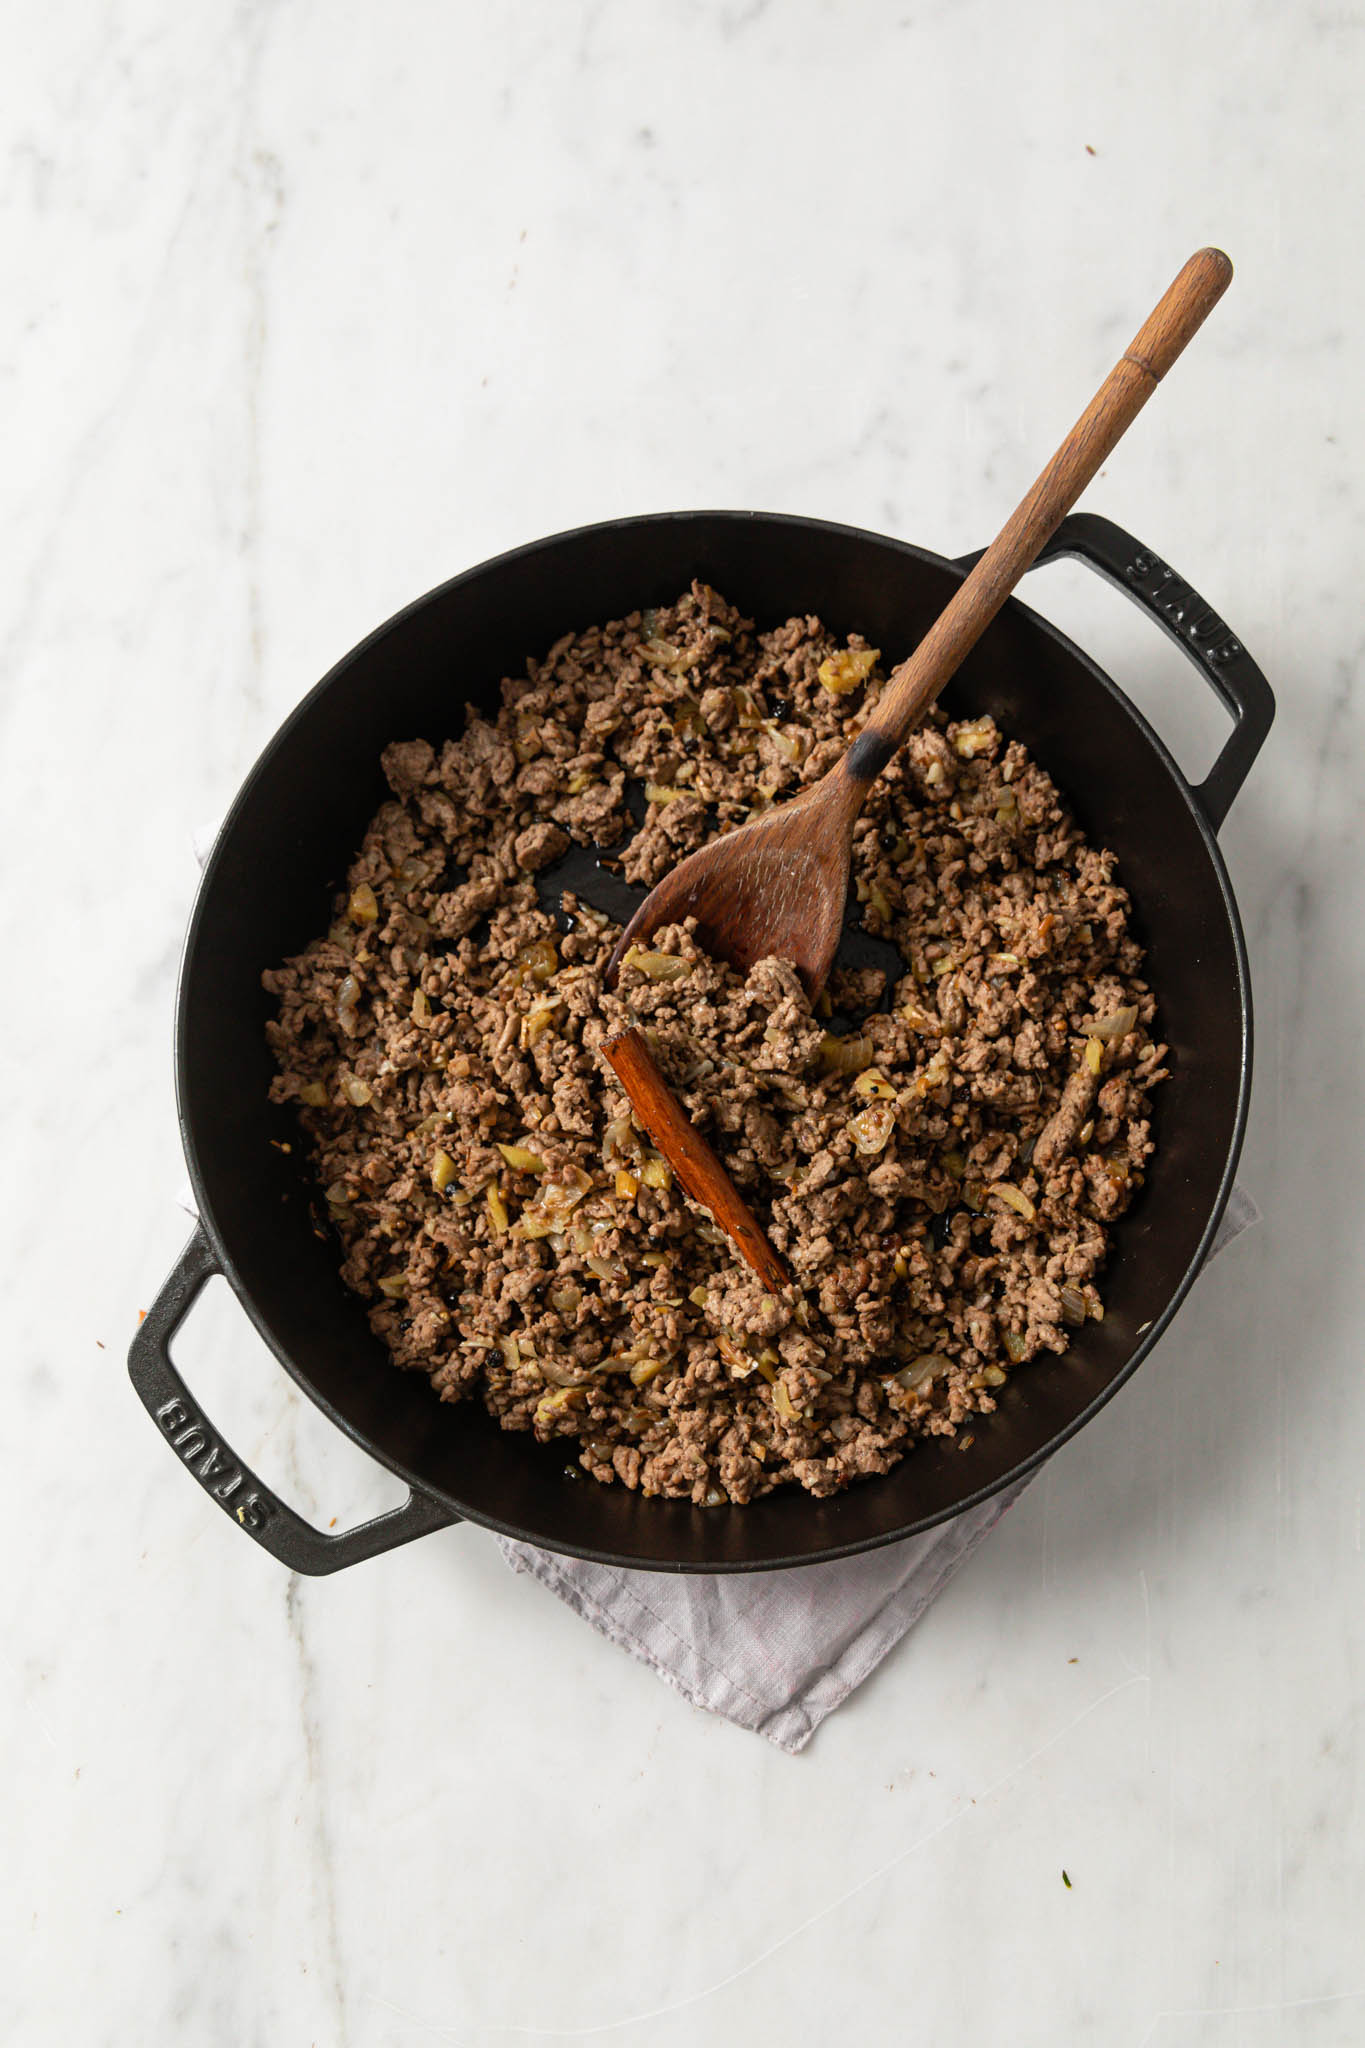 Keema curry in a black pan with a wooden spoon